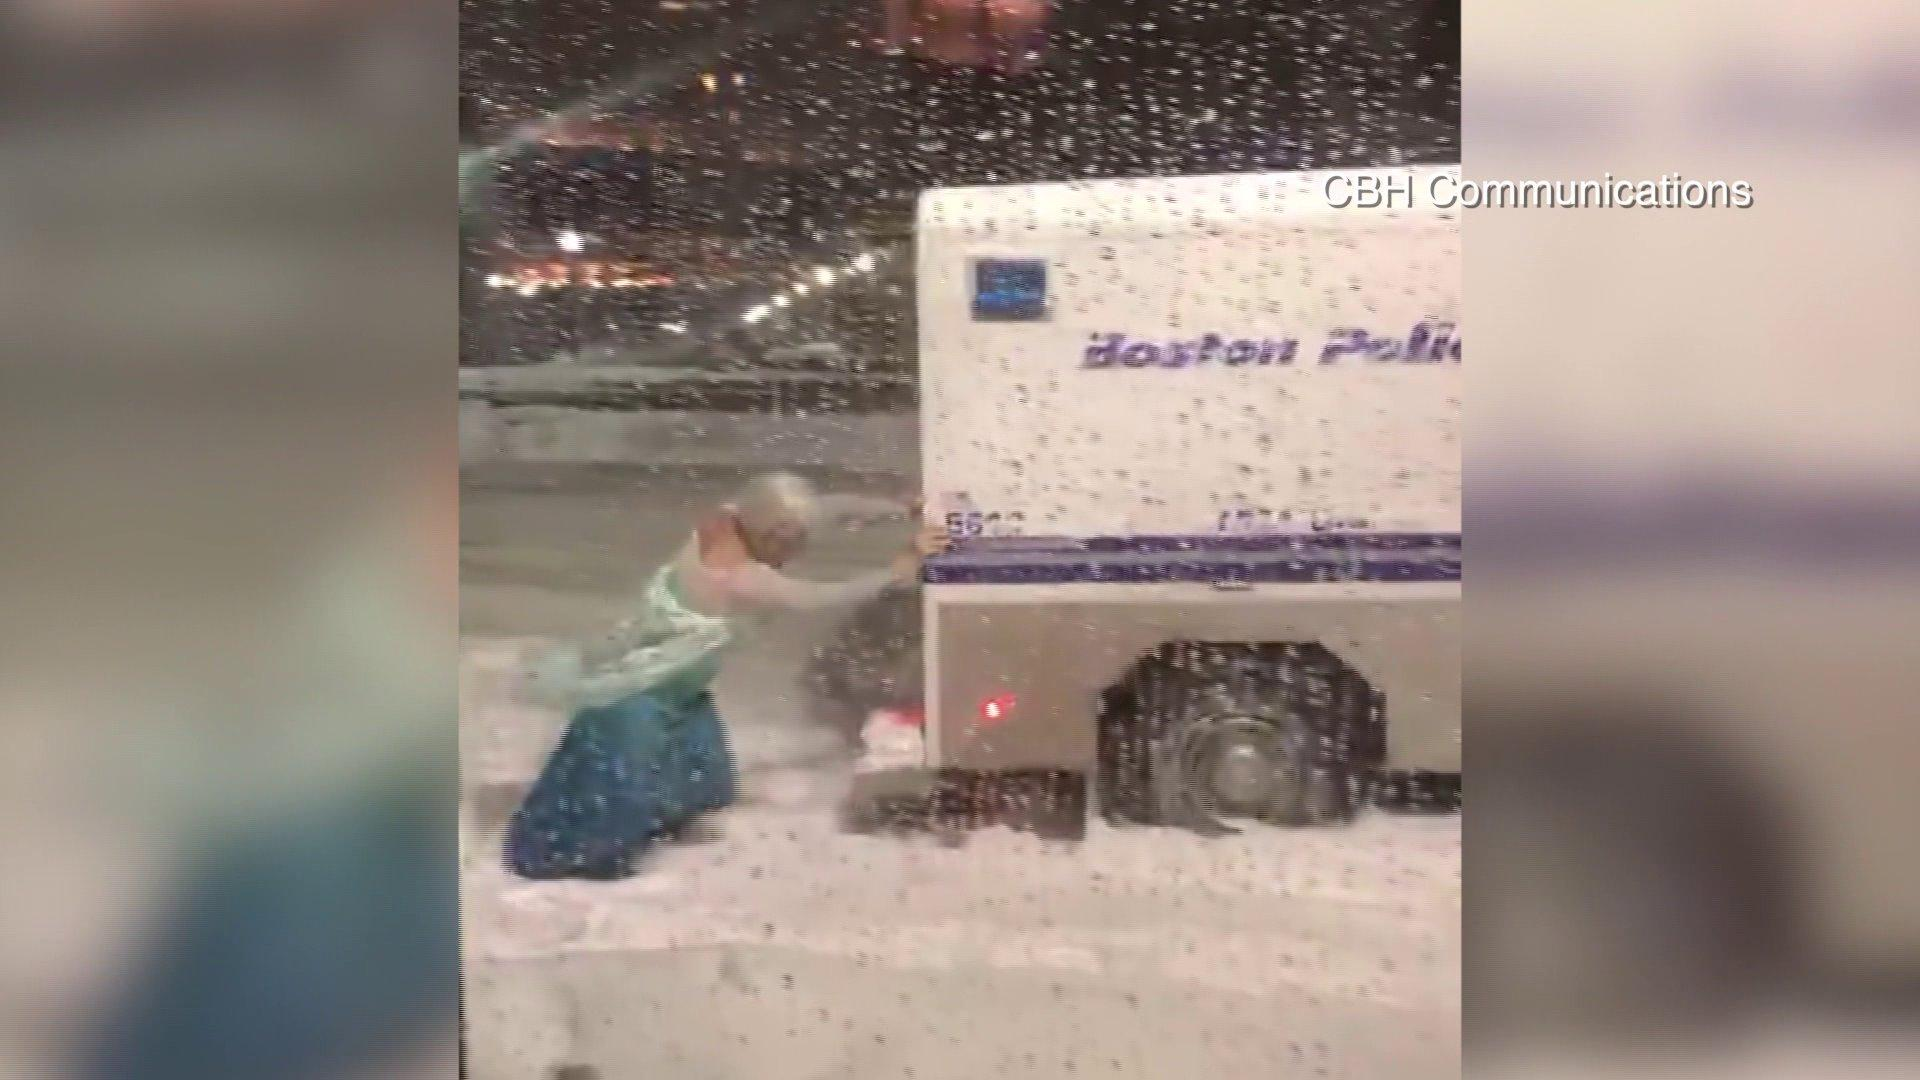 Sp 500 movers mat wynn video nasdaq elsa pushes boston police vehicle out of snow biocorpaavc